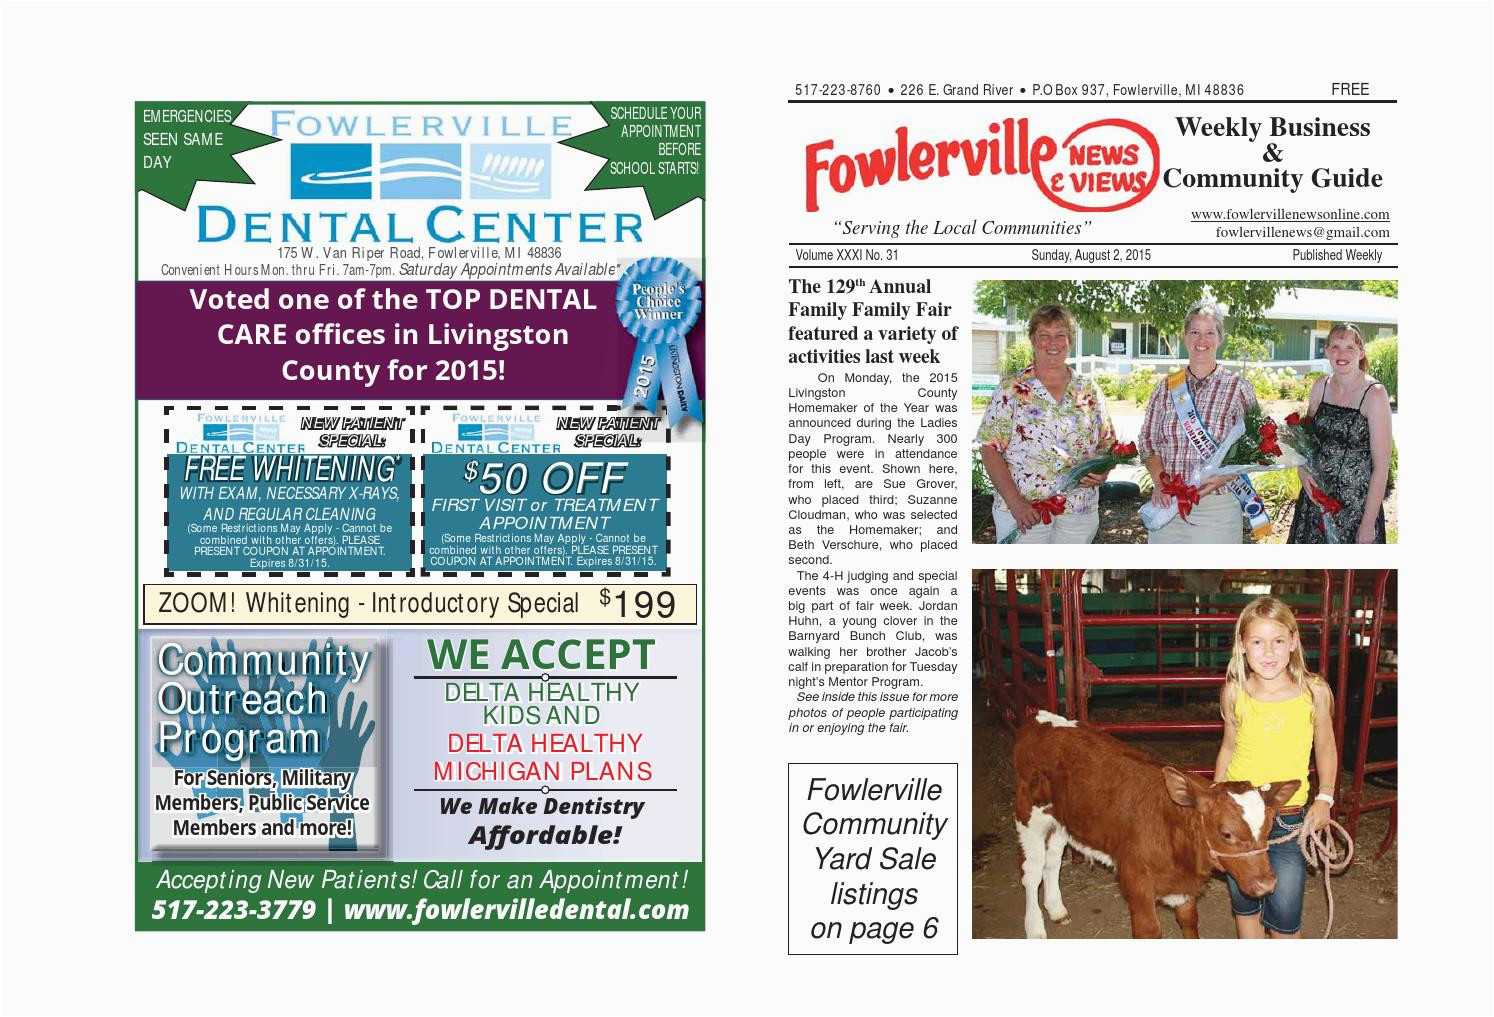 fowlerville news views online august 2 2015 by steve horton issuu